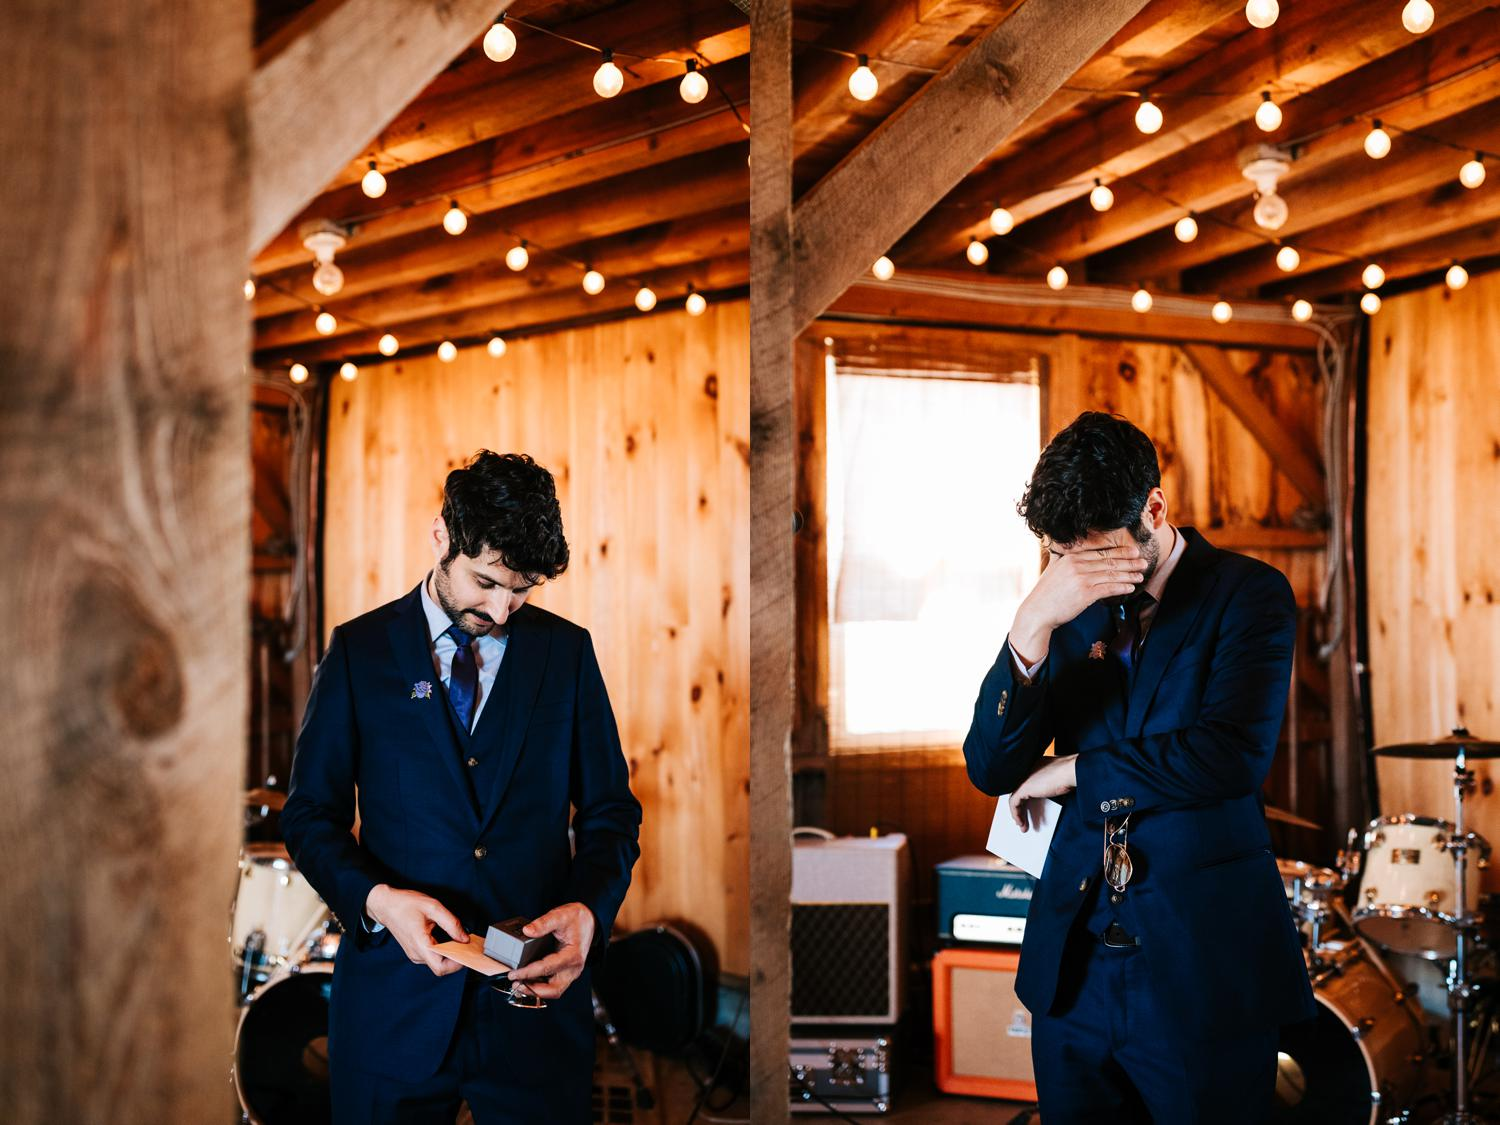 Groom reading note from bride in barn wedding in west Texas